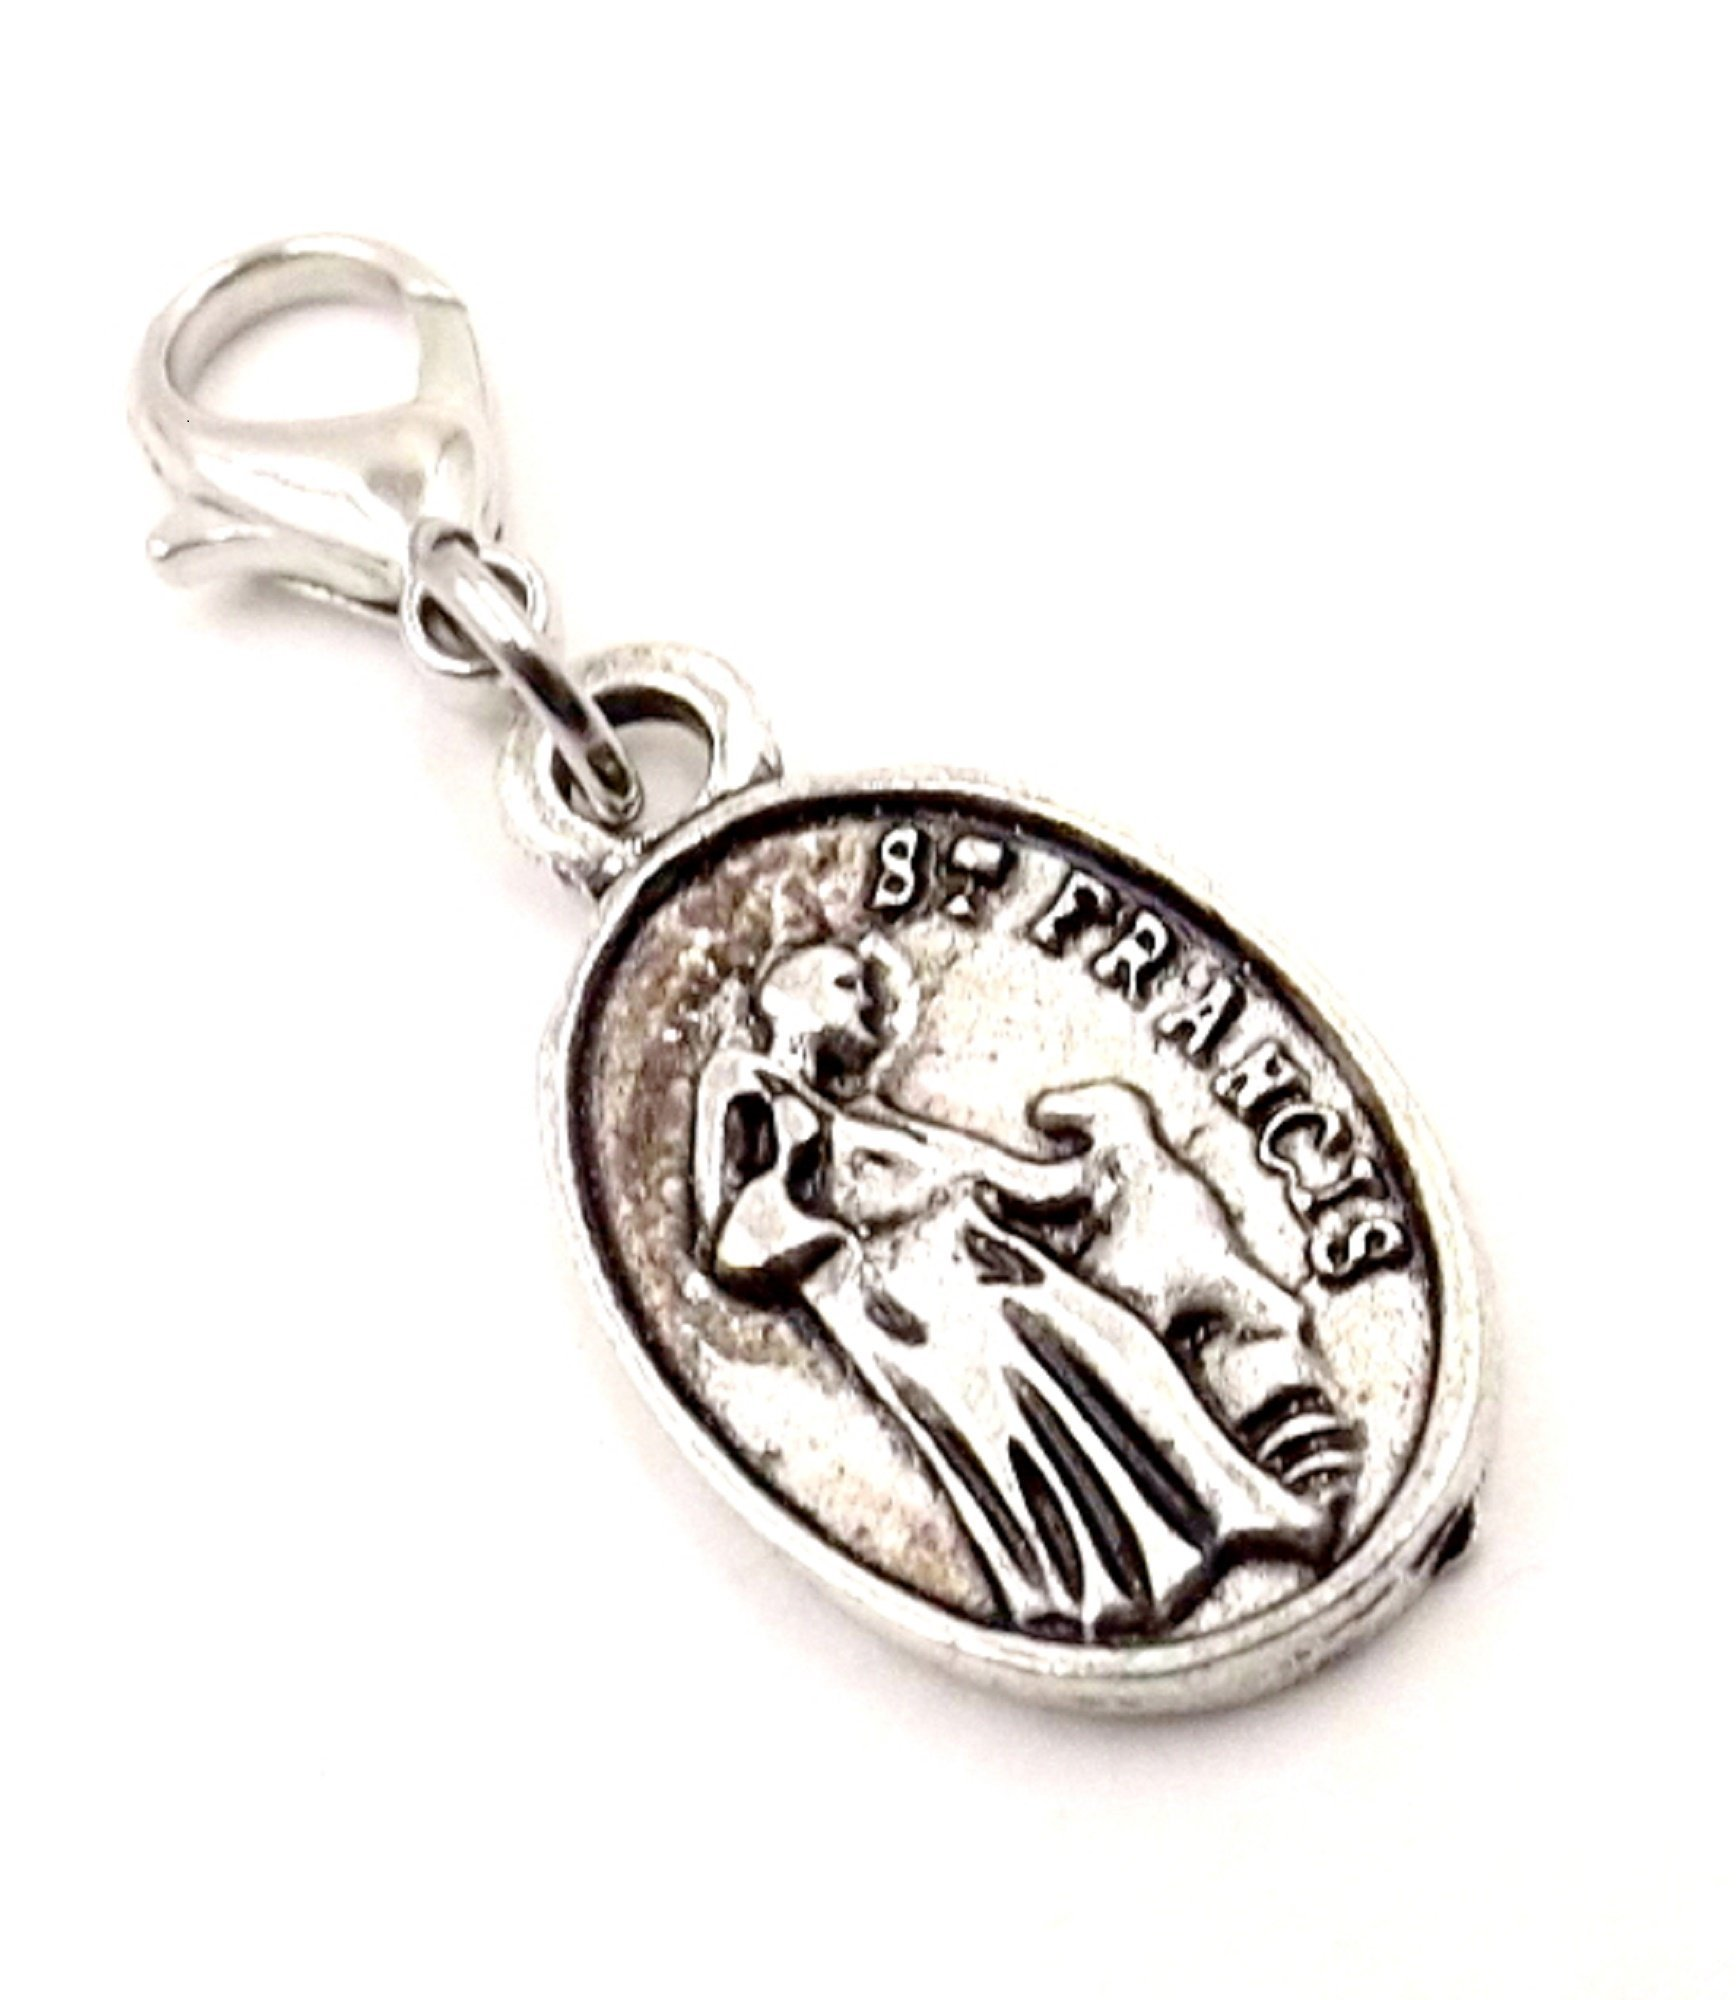 Bling Charm for Collar- St. Francis Prayer for Protection - Fur-baby - Pet collection - Dog/ Cat